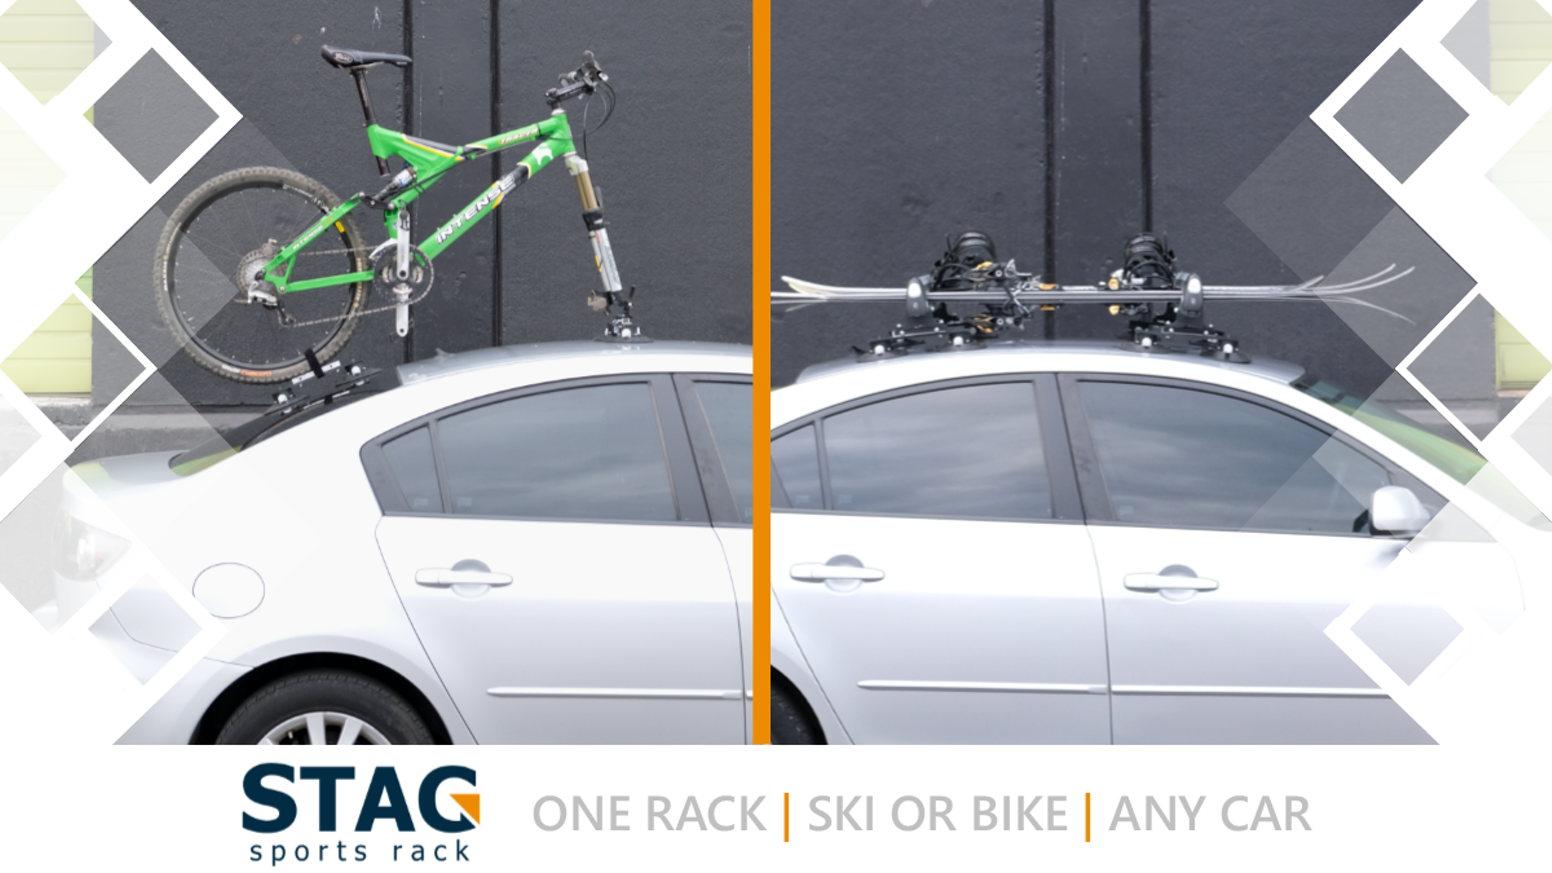 The first ever interchangeable roof rack for multi-sport athletes. Pre-order still available through our website!